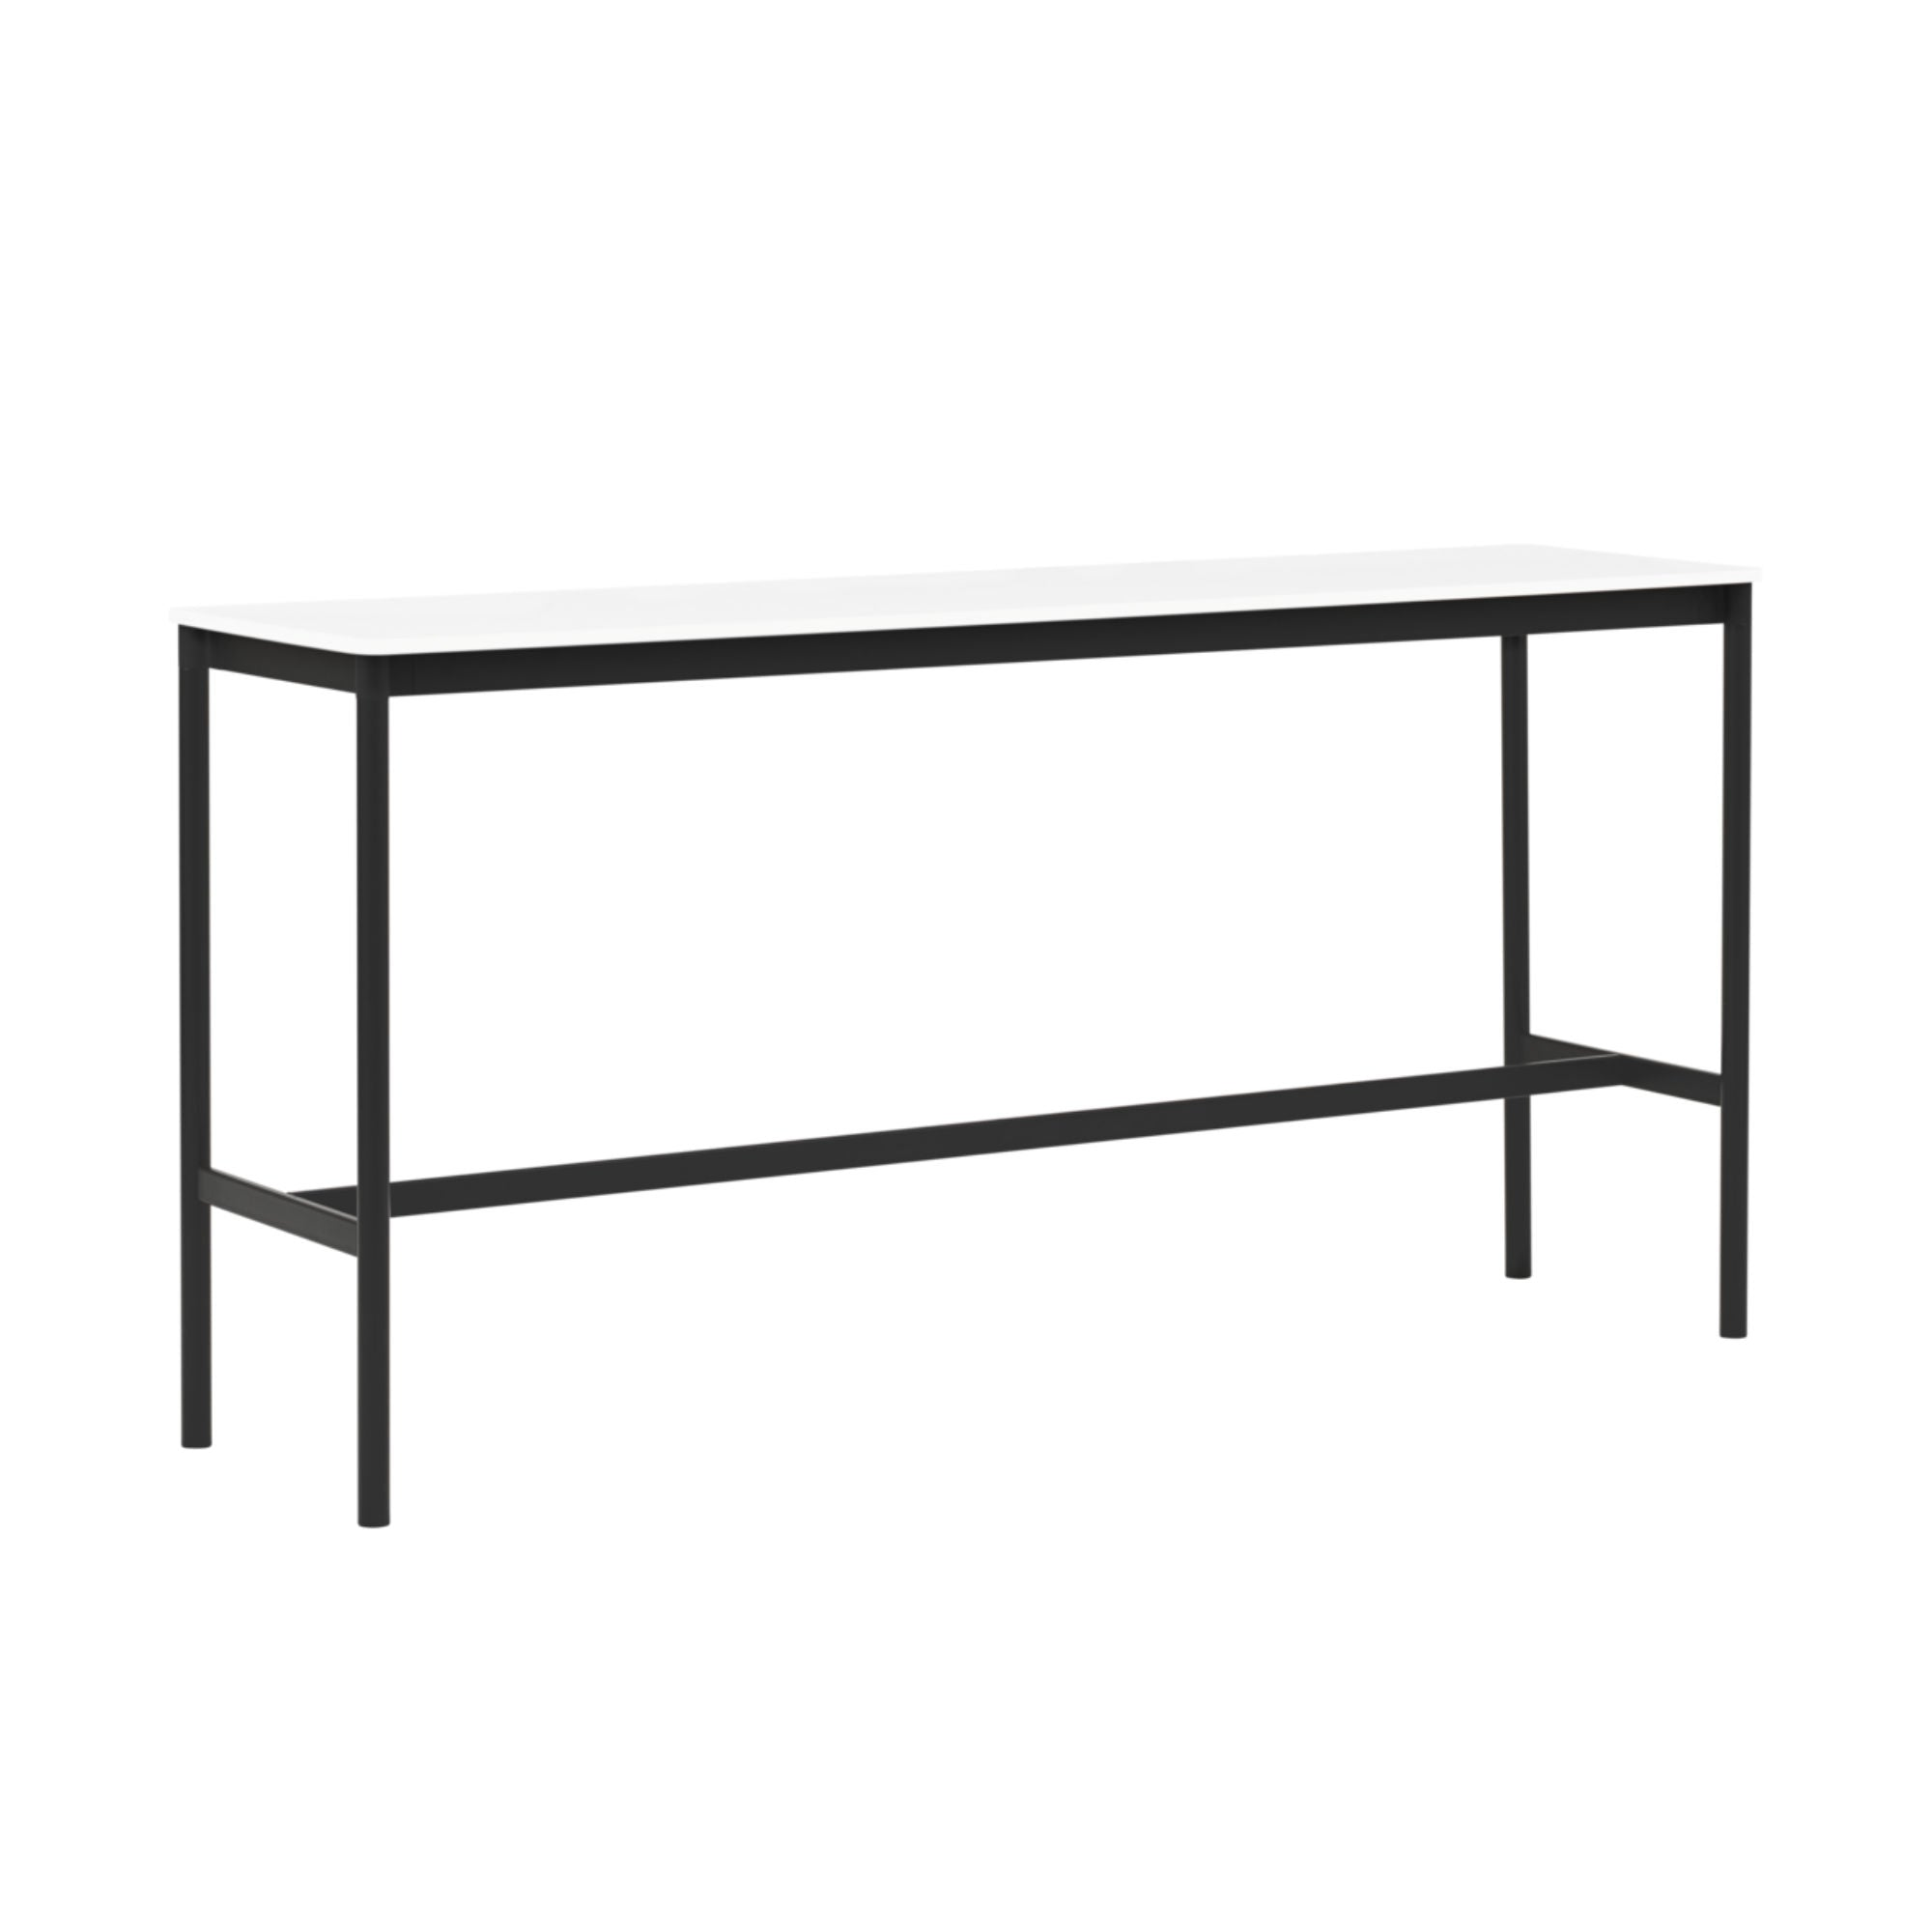 Muuto Base High Table 190x50 h:95cm , White Laminate/White ABS/ Black